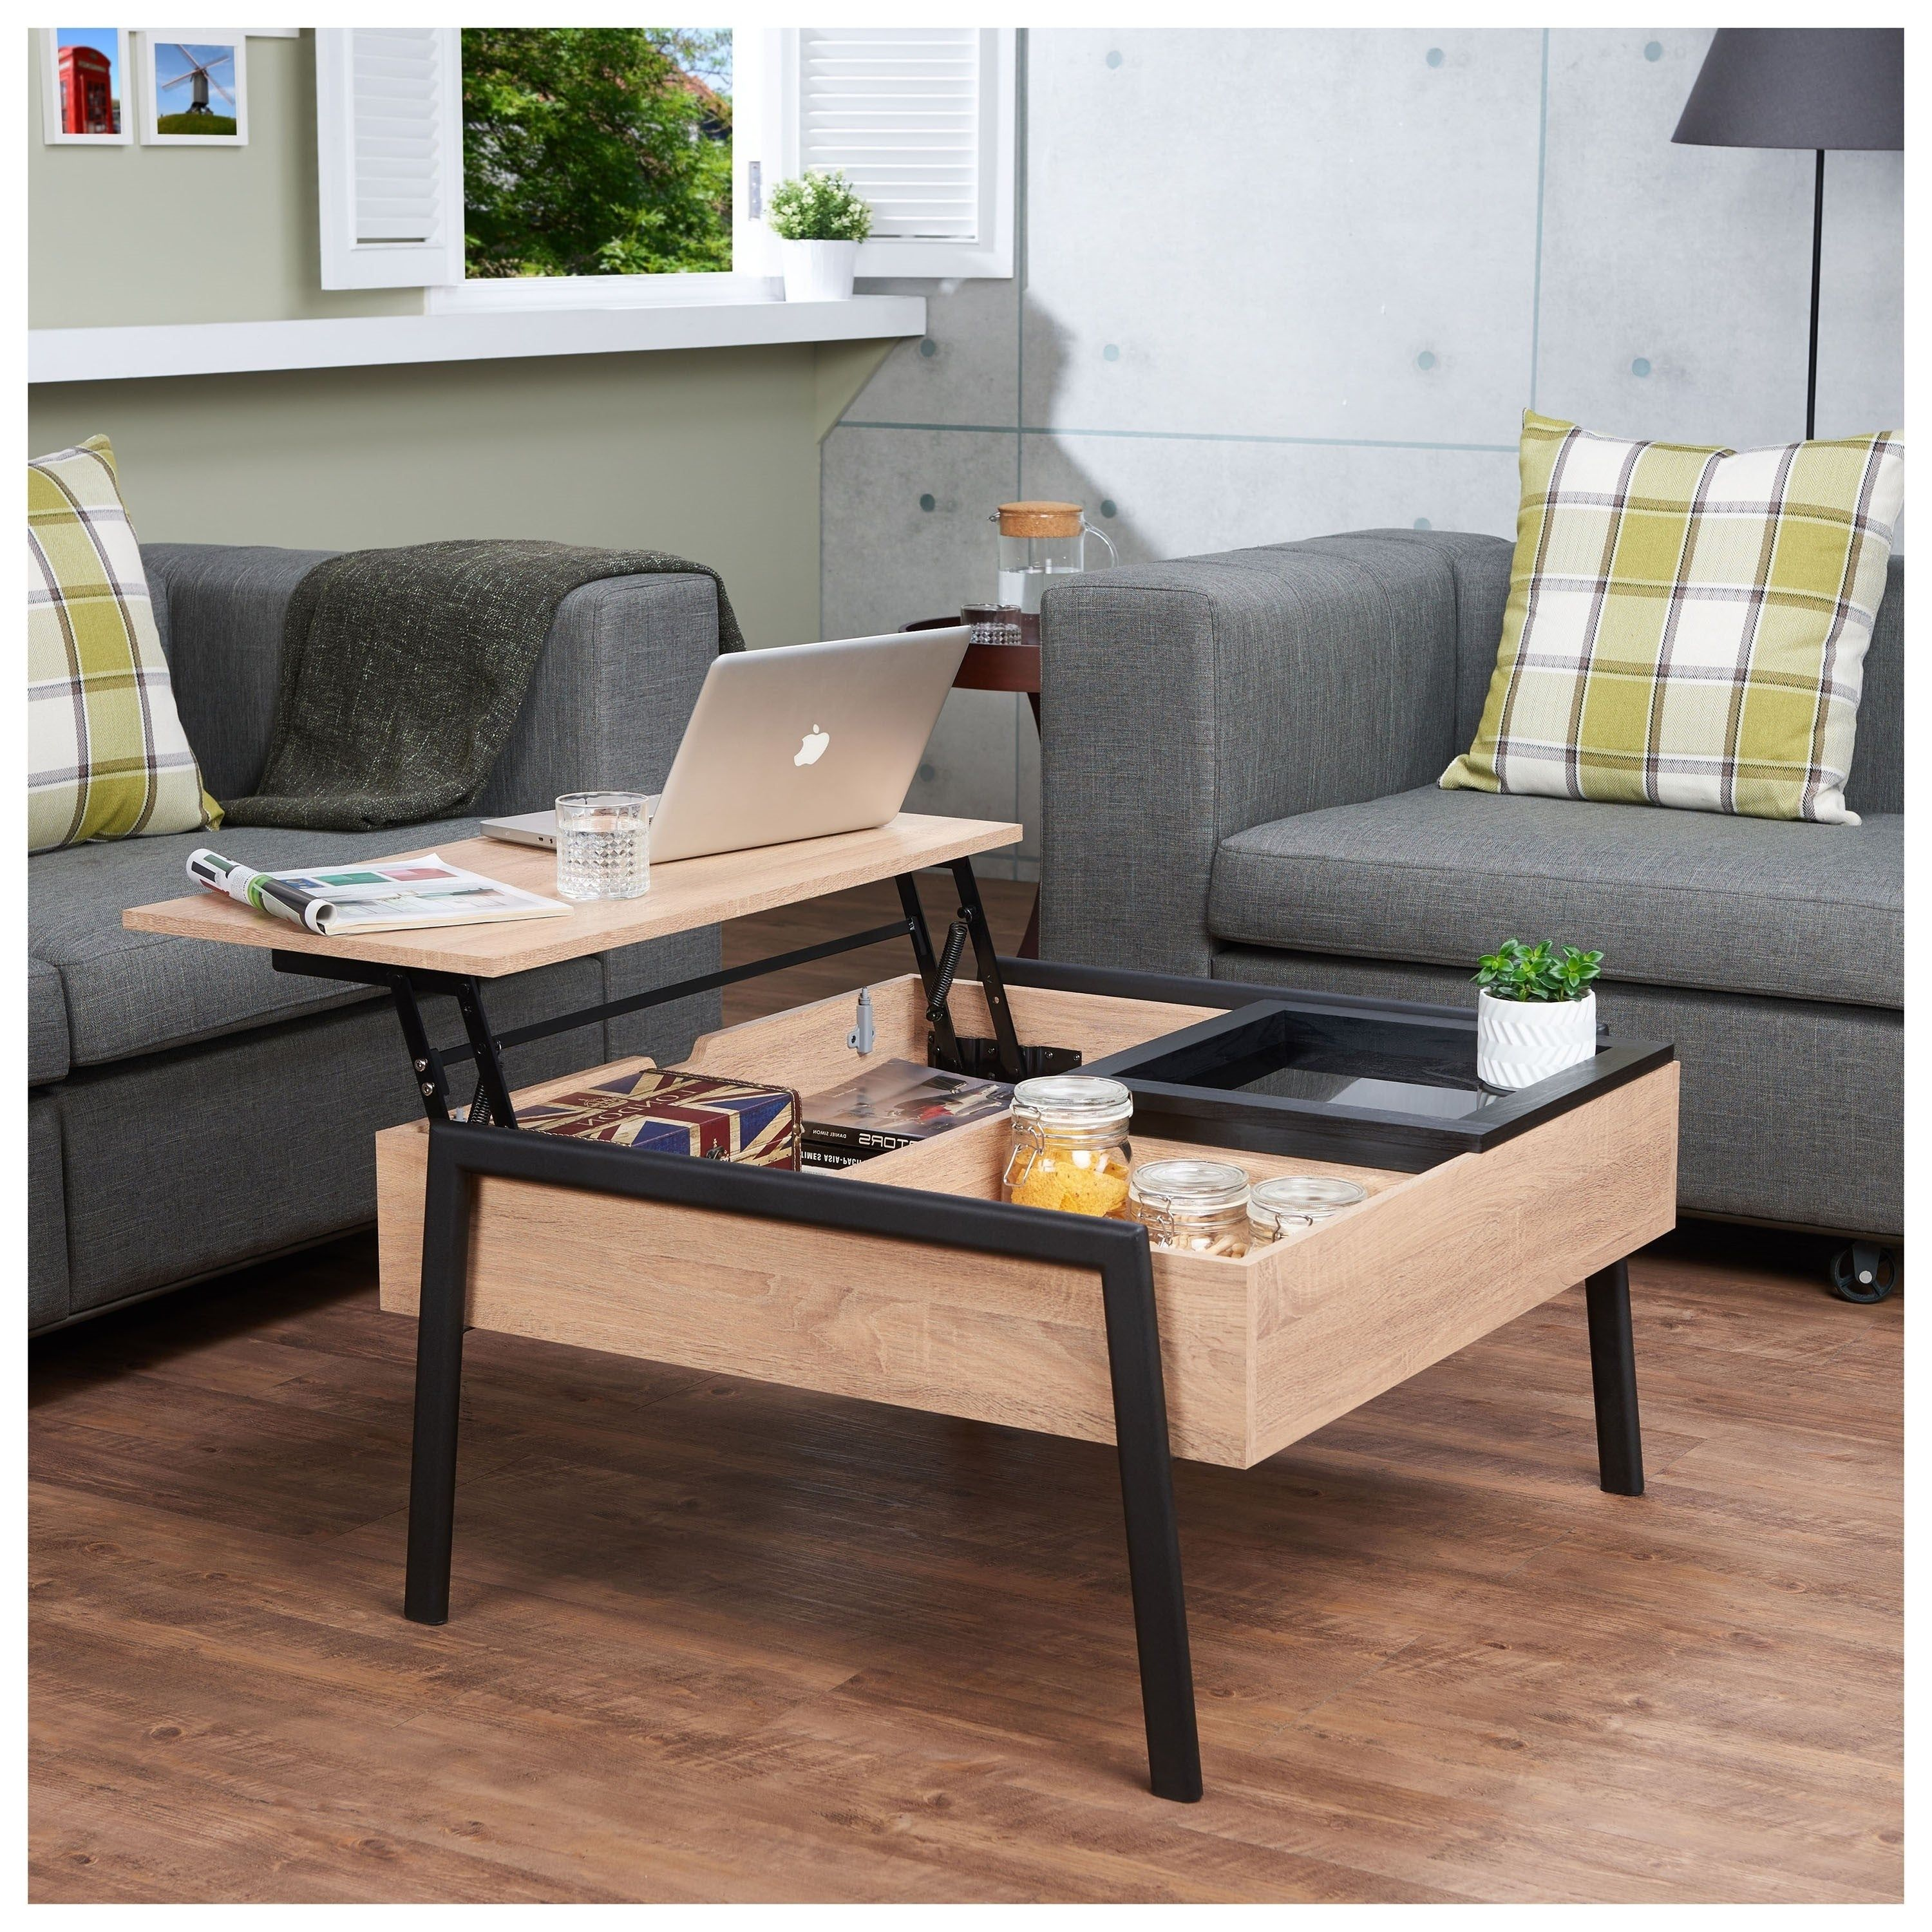 15 Beautiful Lift Top Coffee Tables You Can Buy Cool Things To Buy 247 Coffee Table Lift Top Coffee Table Coffee Tables For Sale [ 3000 x 3000 Pixel ]